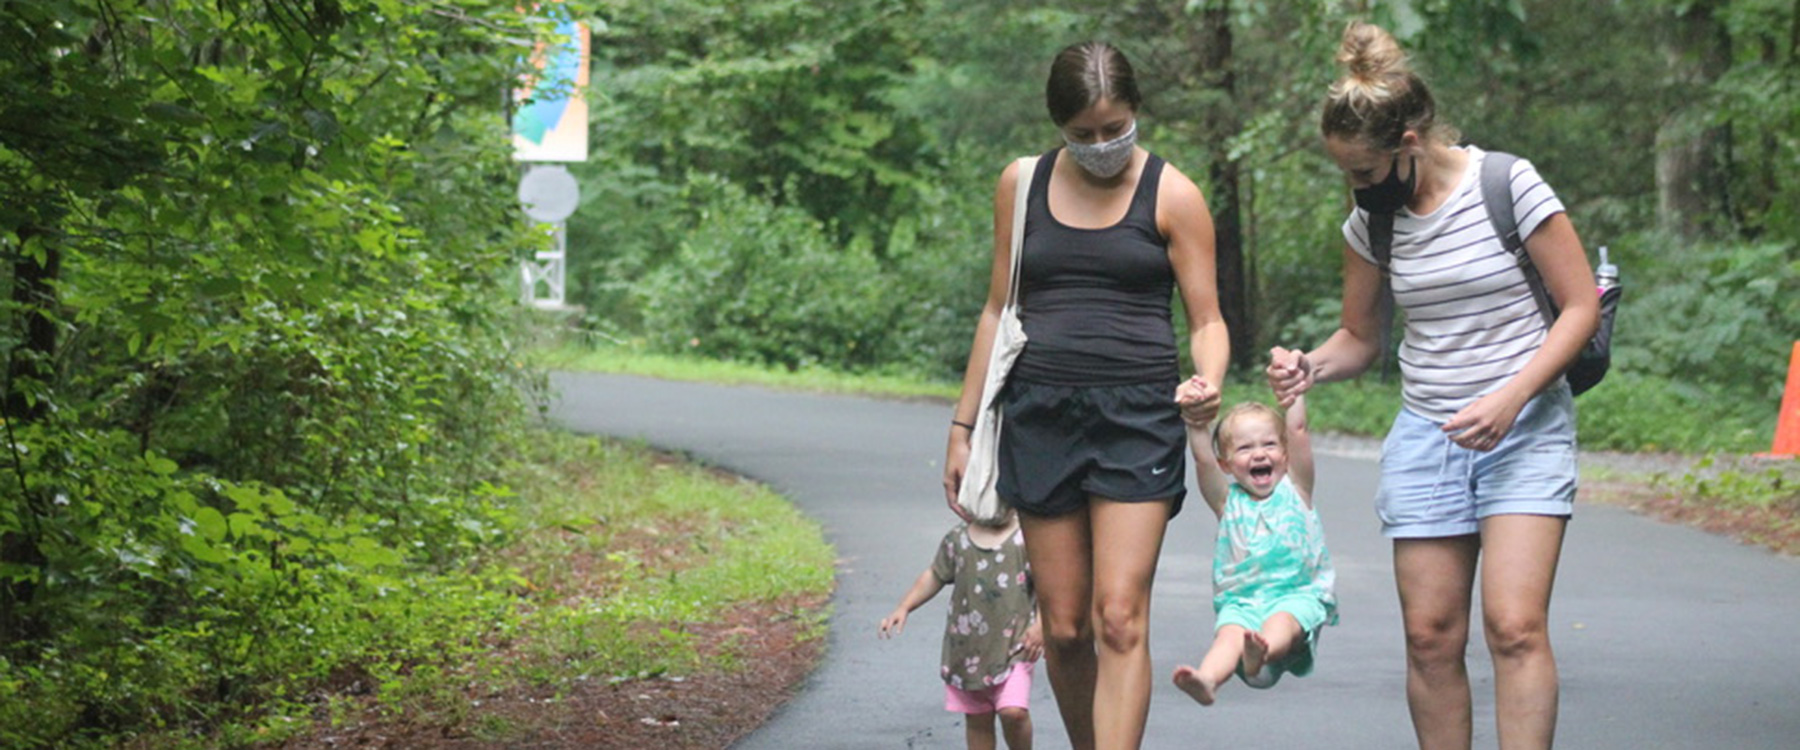 Two women and a kid walking along the path